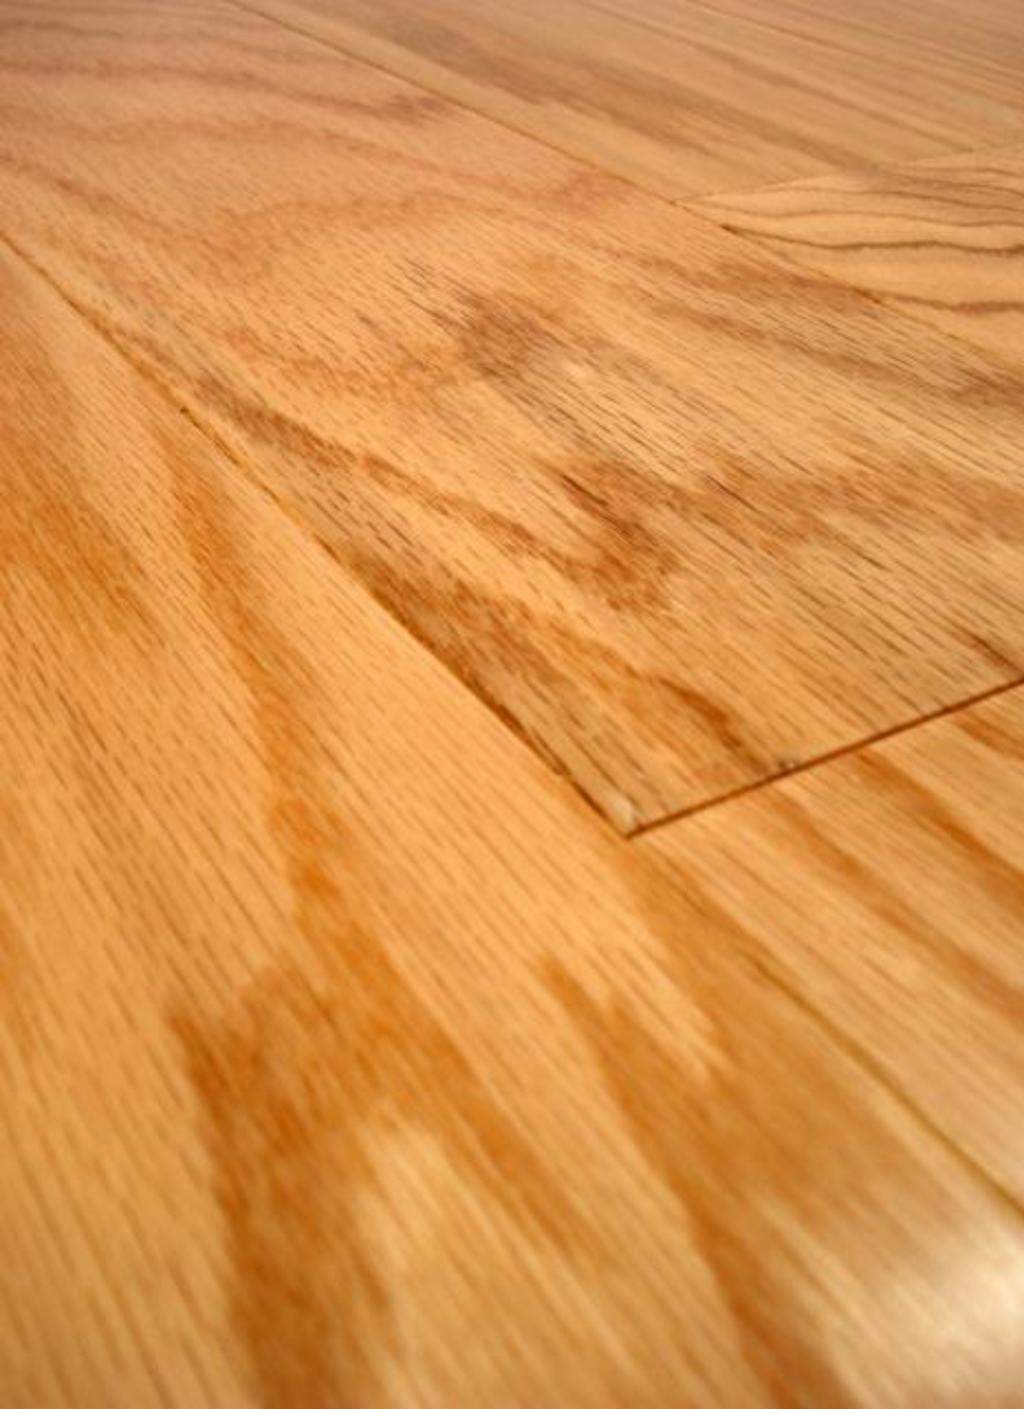 Wood floor repair restoring wooden floors edinburgh for Hardwood floor repair